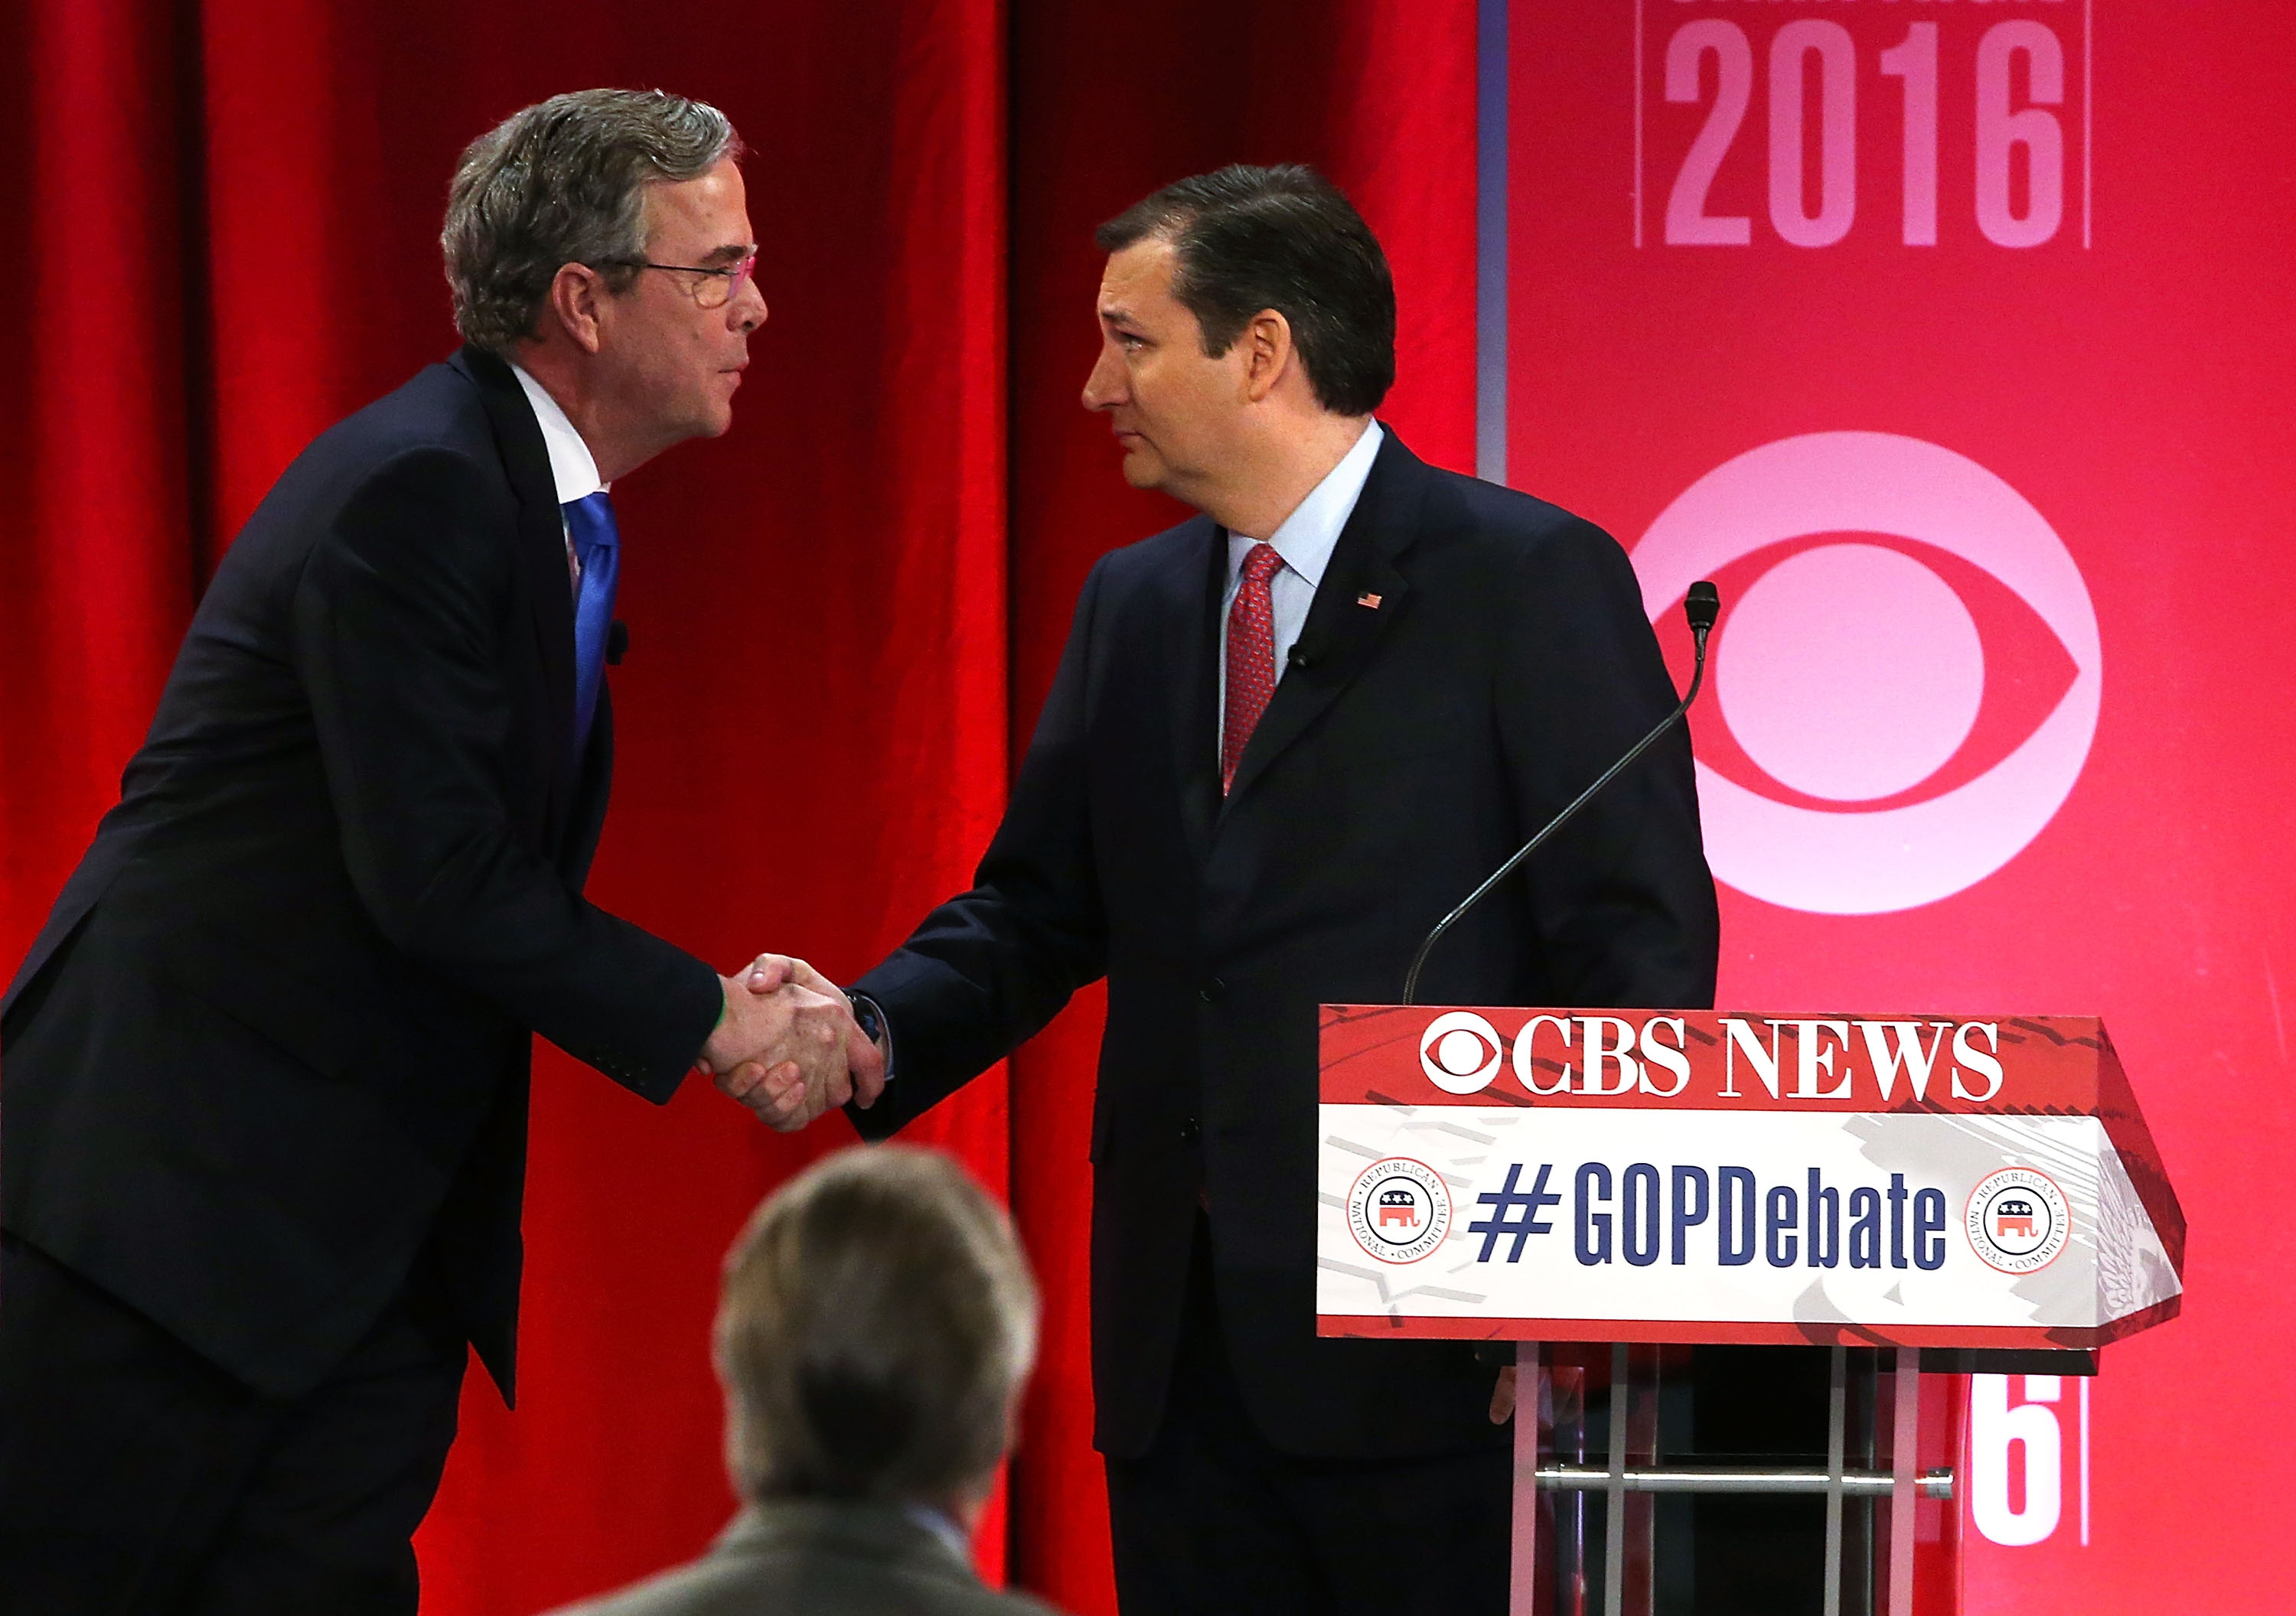 Former Florida Gov. Jeb Bush endorsed  Texas Sen. Ted Cruz for president. They are seen here shaking hands on Feb. 13, 2016, in Greenville, S.C.